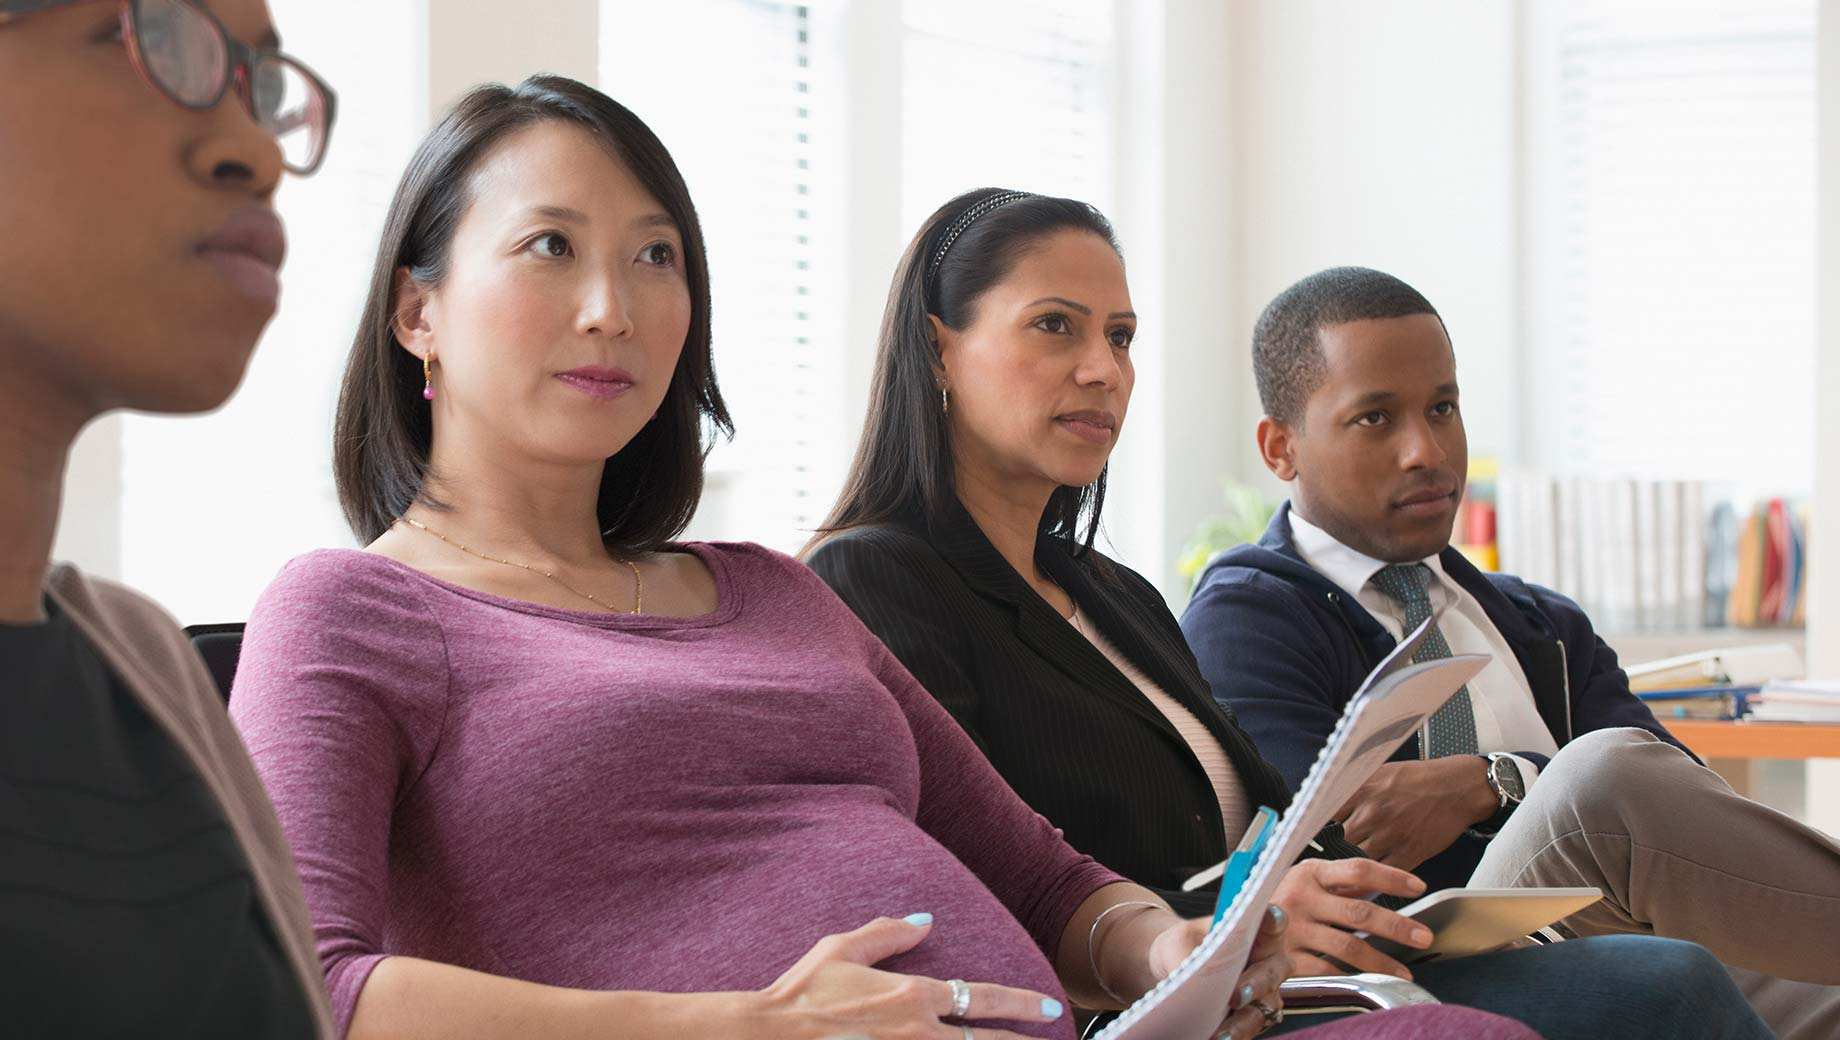 Sustain a Work Culture That Works for New Moms